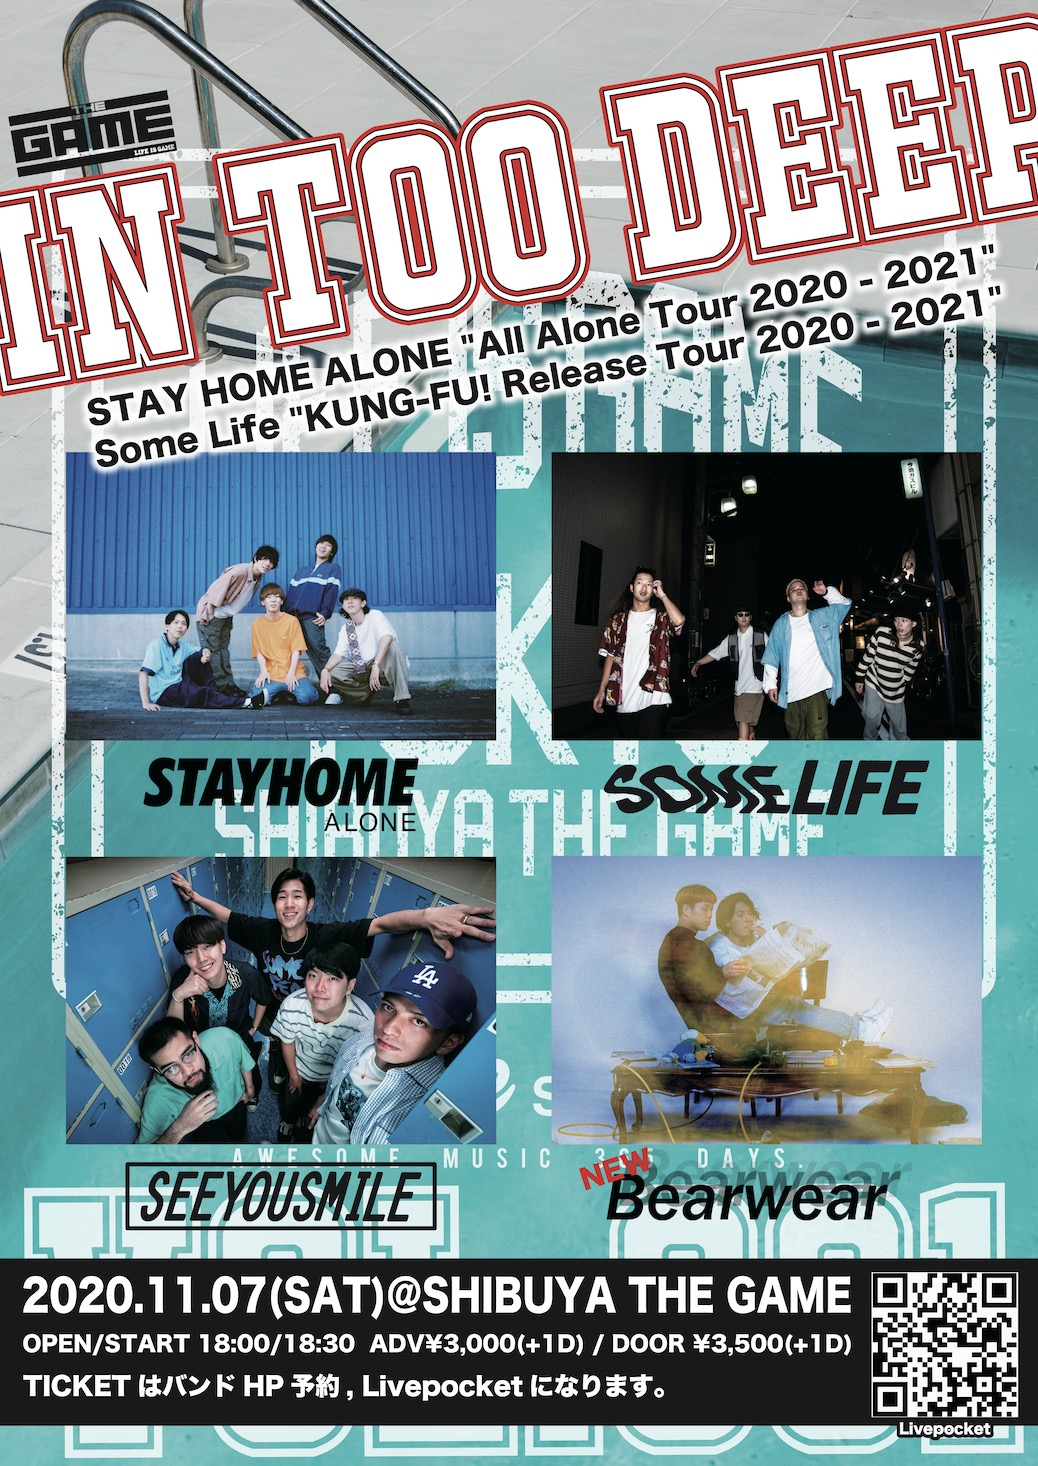 IN to DEEP vol.1 STAY HOME ALONE & Some Life Release Tour